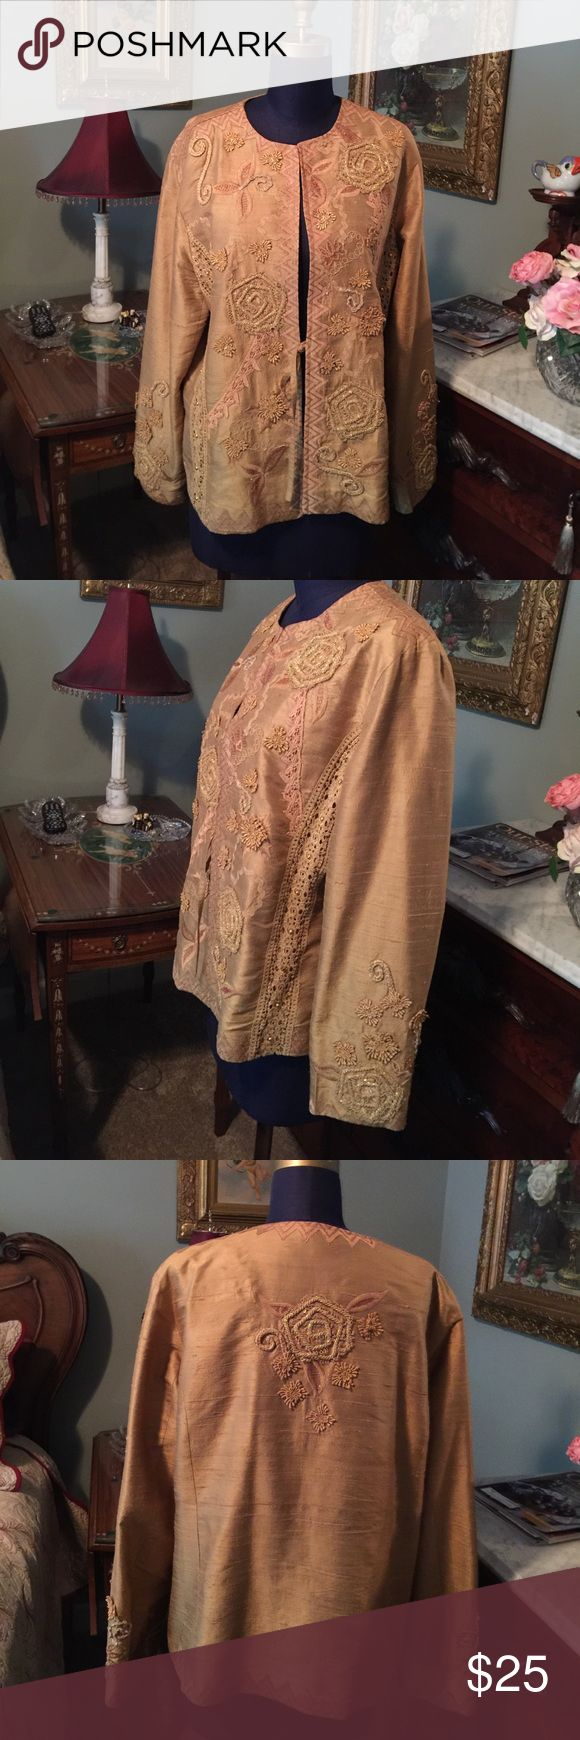 """Timeless Silk, heavily Embroidered Evening Jacket. This is a timeless """"Coldwater Creek"""" Silk, and heavily Embroidered evening, or Holiday jacket. It is the color gold, with sequins, and lace. It has a small tie in the front, and measures a generous 22"""" from armhole to armhole in front. Lightly padded shoulders. This is a winner! Coldwater Creek Jackets & Coats Blazers"""